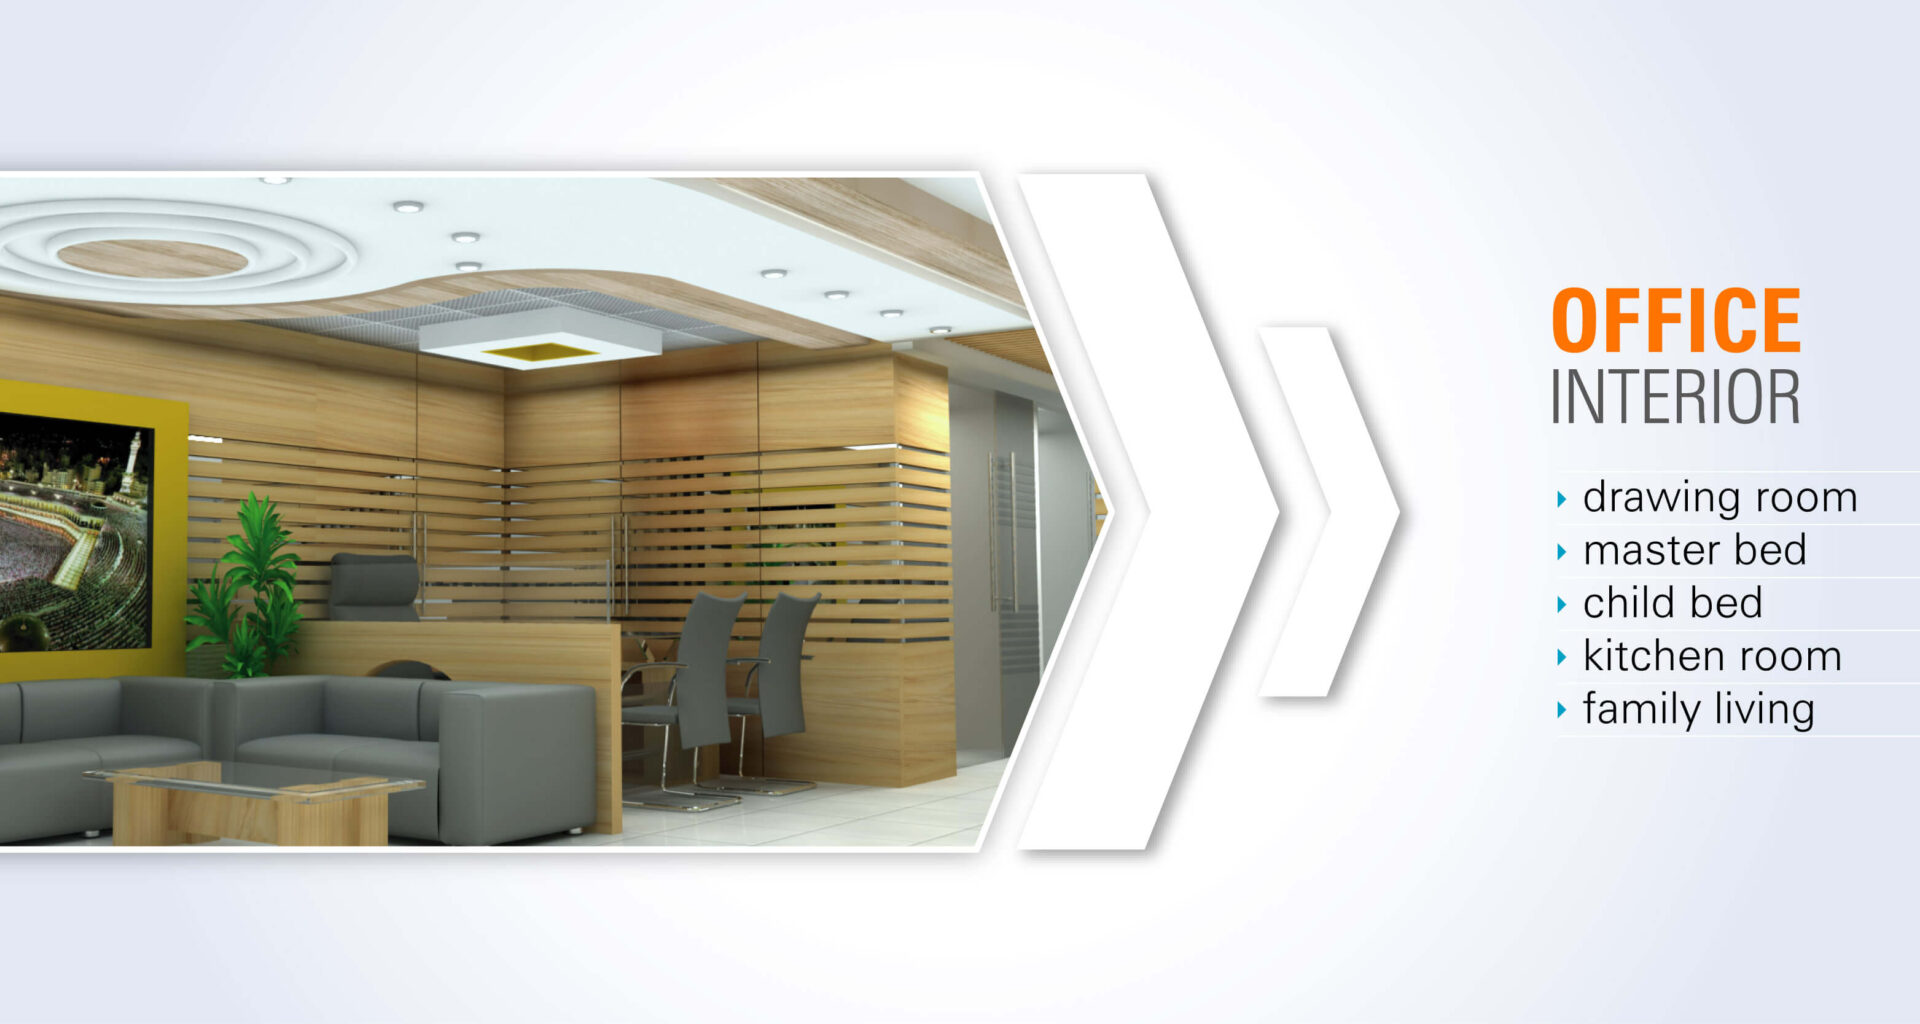 best office interior design company